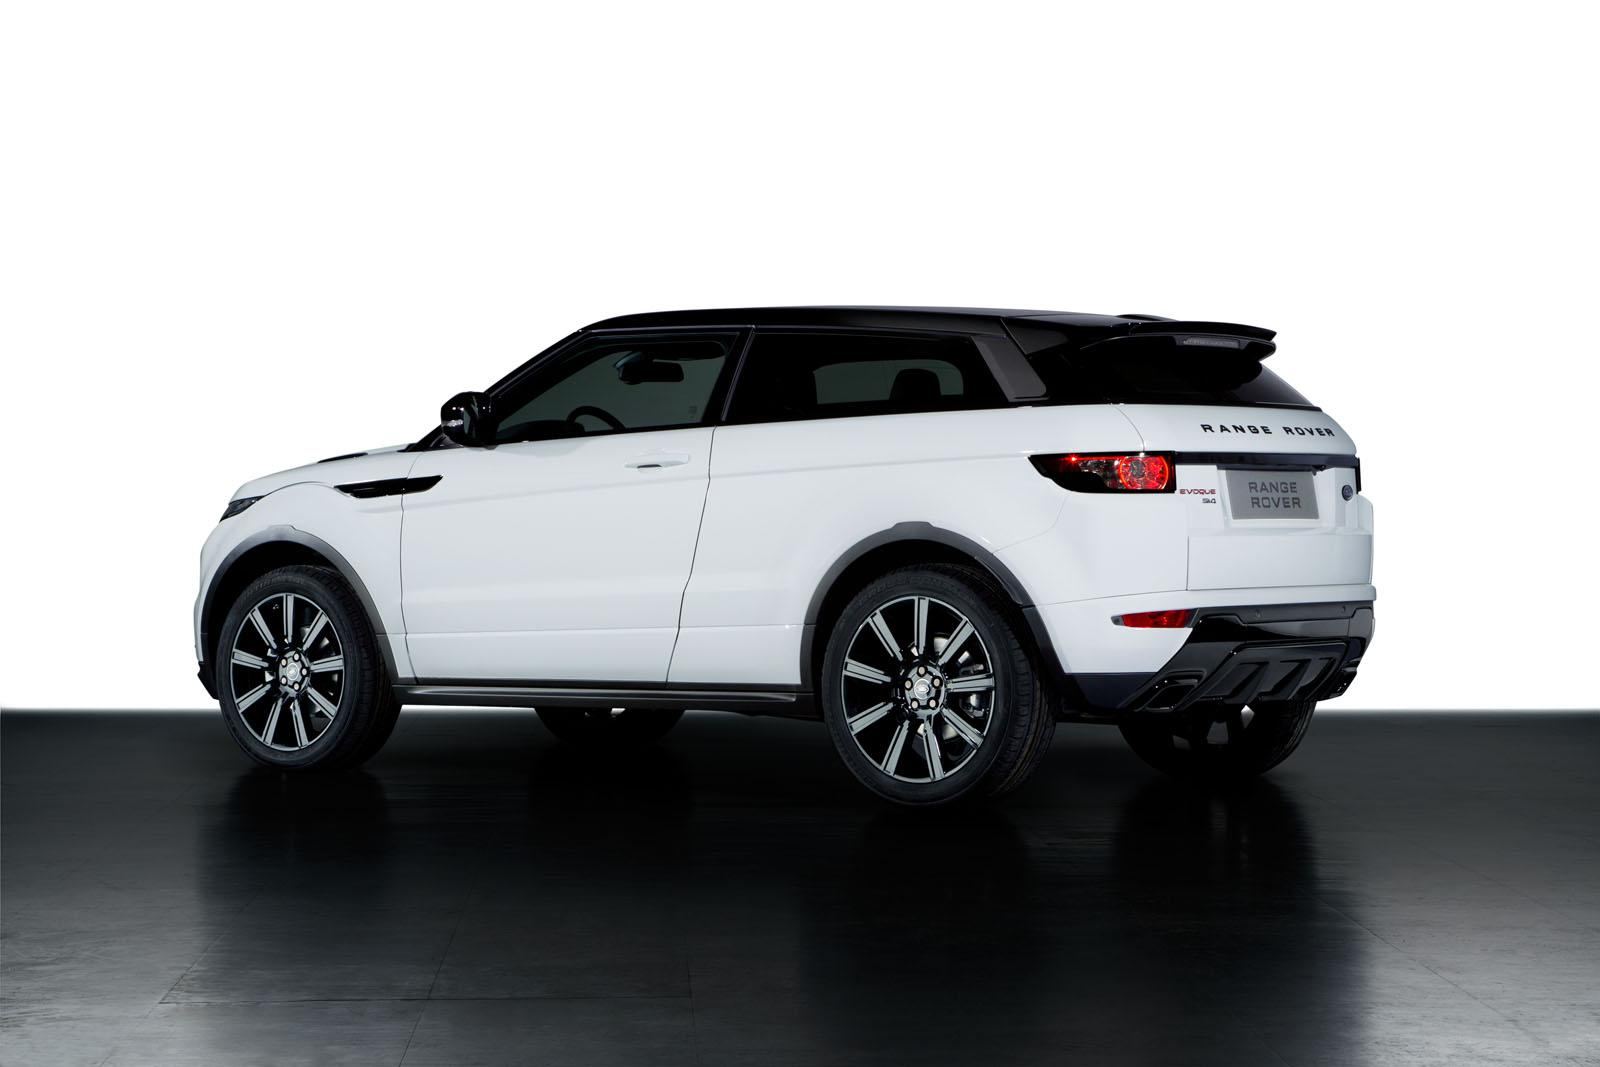 Range Rover Usa >> Range Rover Evoque Black Pack Launched - autoevolution